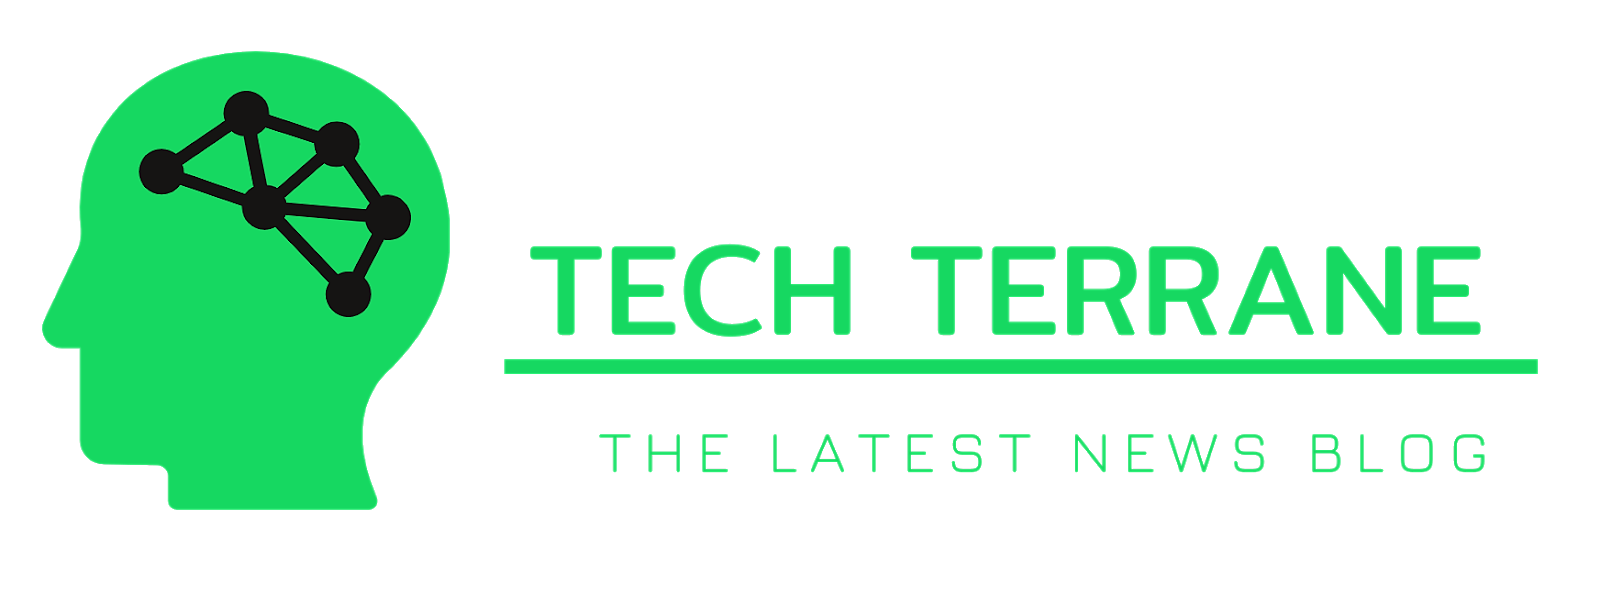 Tech Terrane the latest news website